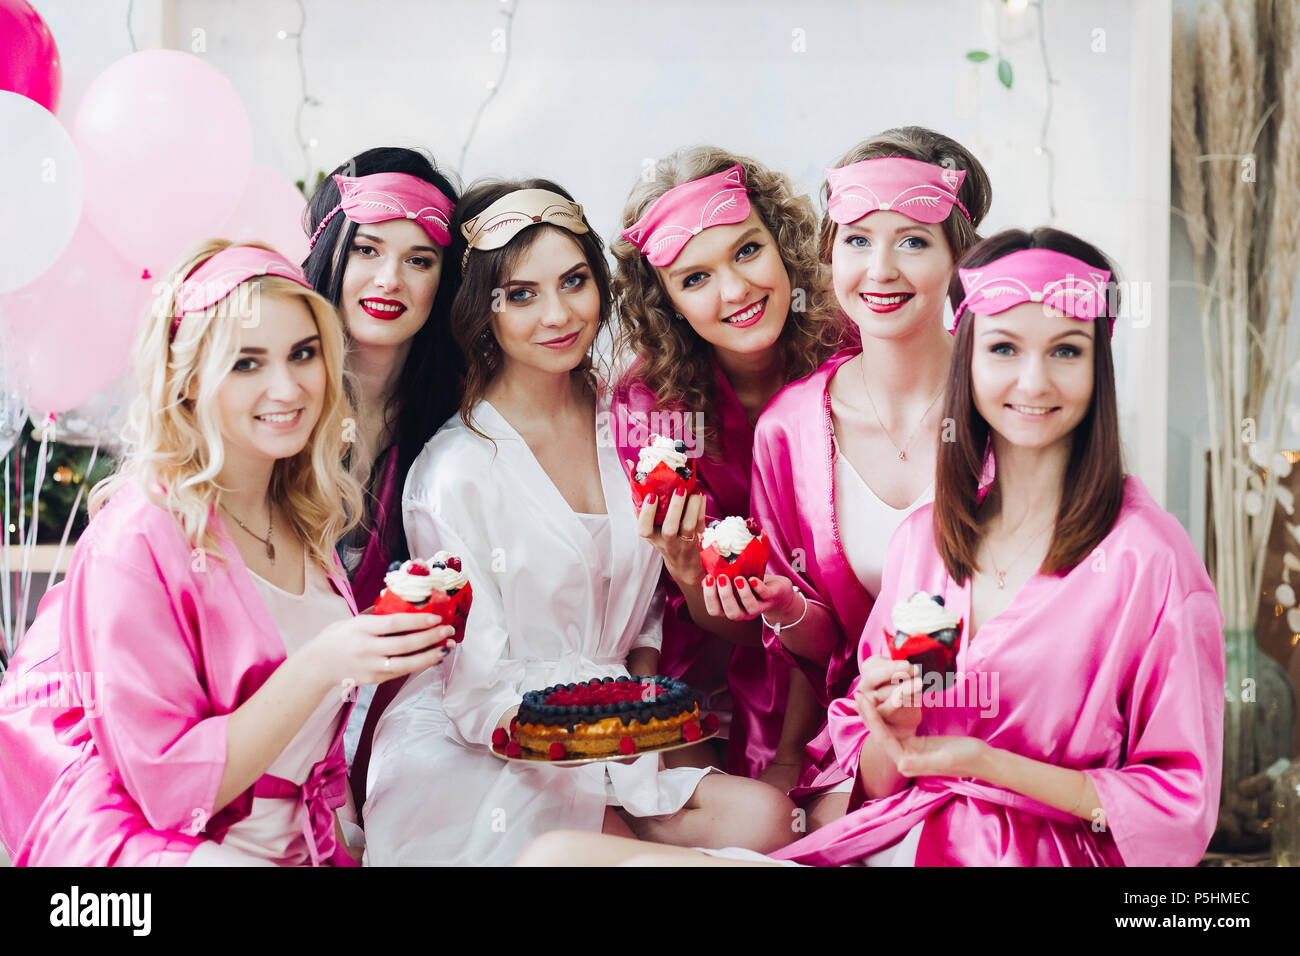 Pretty Girls In Pink Robes And Sleep Masks With Desserts At Bridal Showers Stock Photo Alamy